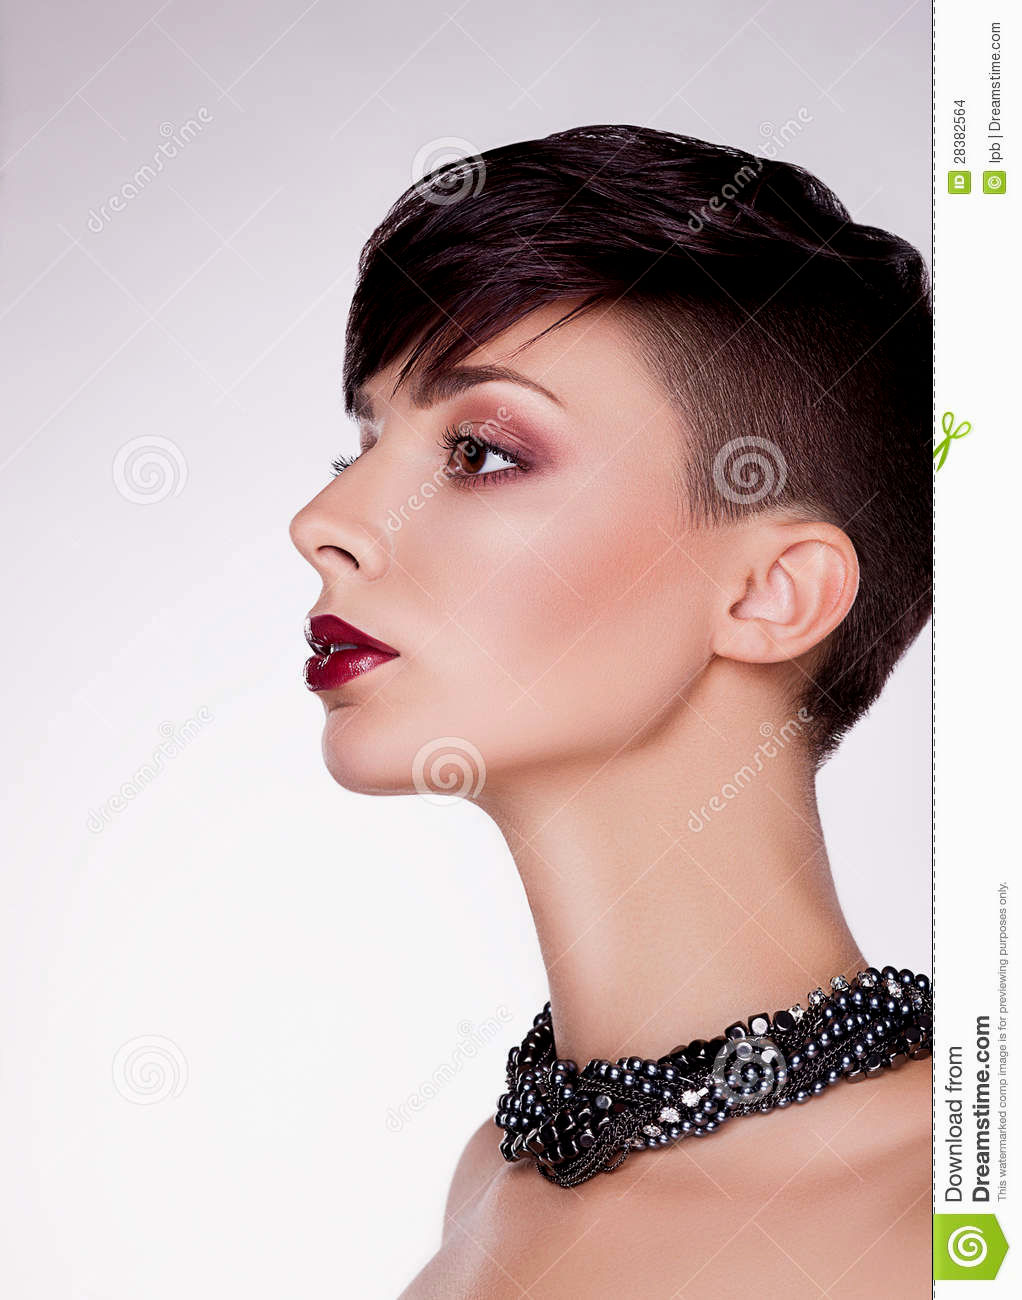 stylish pretty short hair women photo picture-Fancy Very Short Hair Women Photography